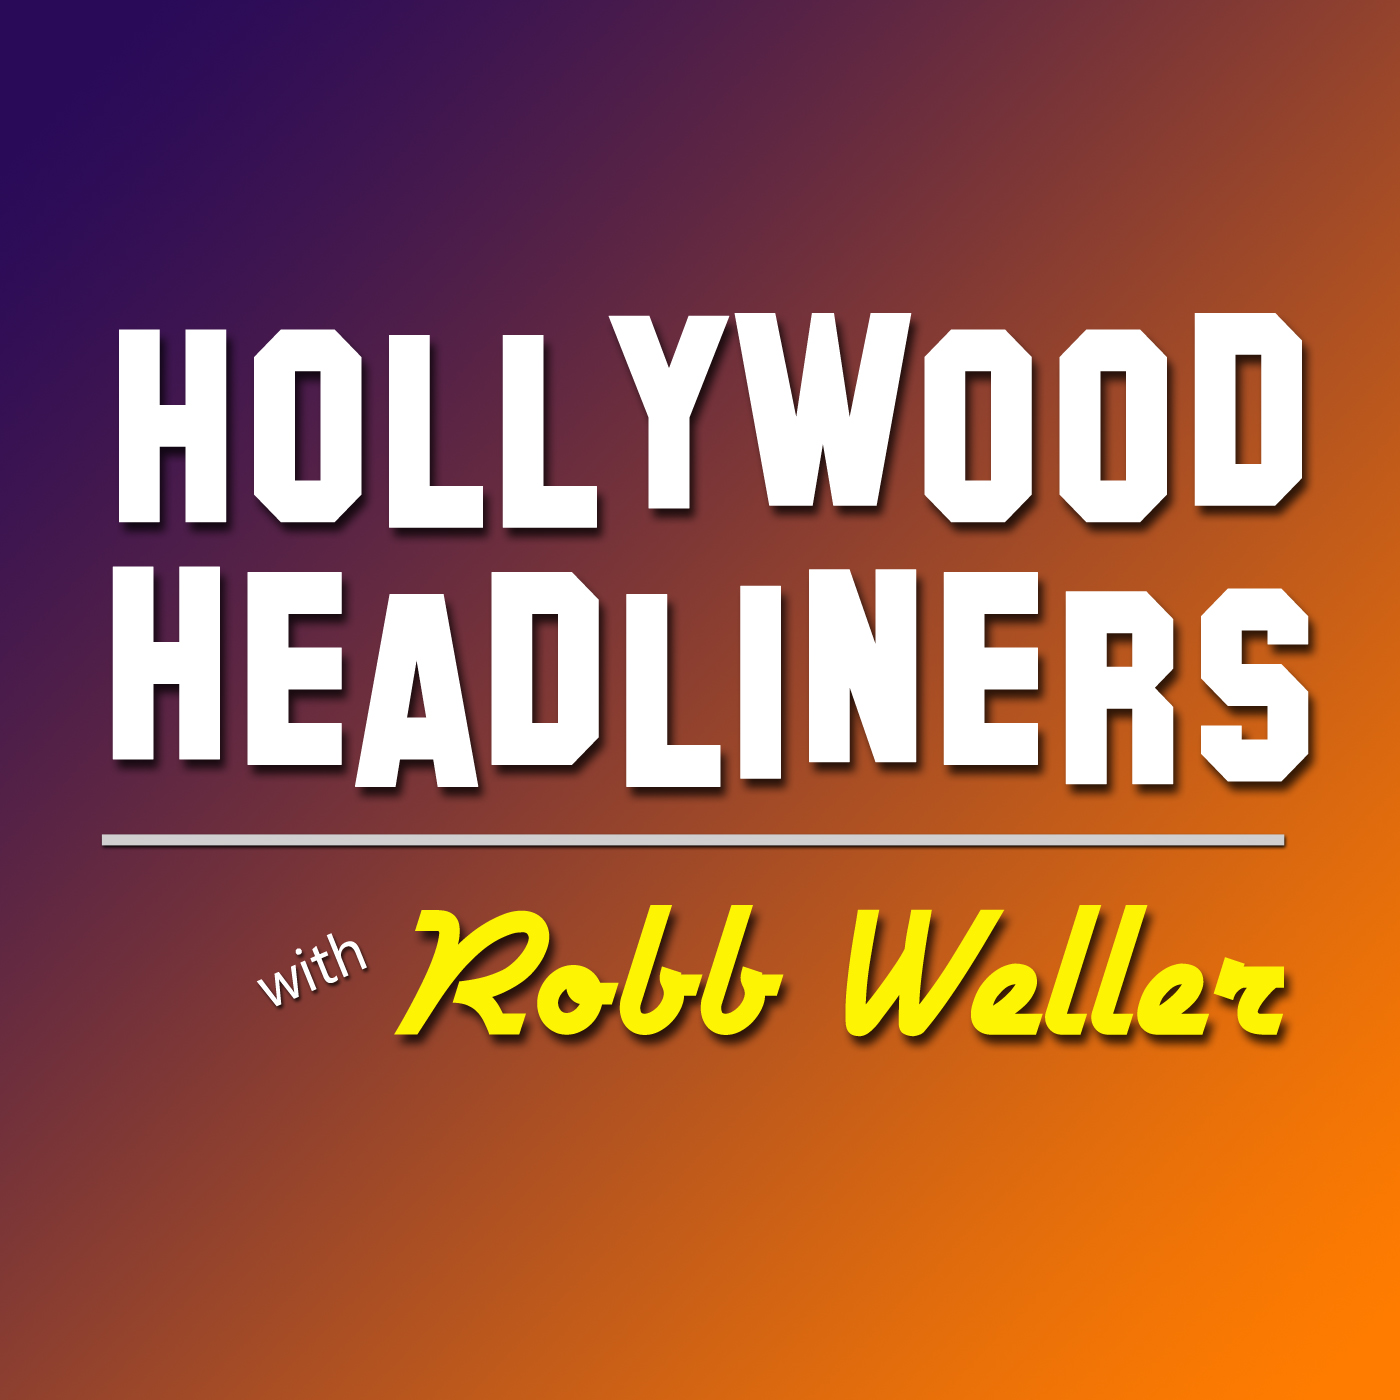 <![CDATA[Hollywood Headliners with Robb Weller]]>